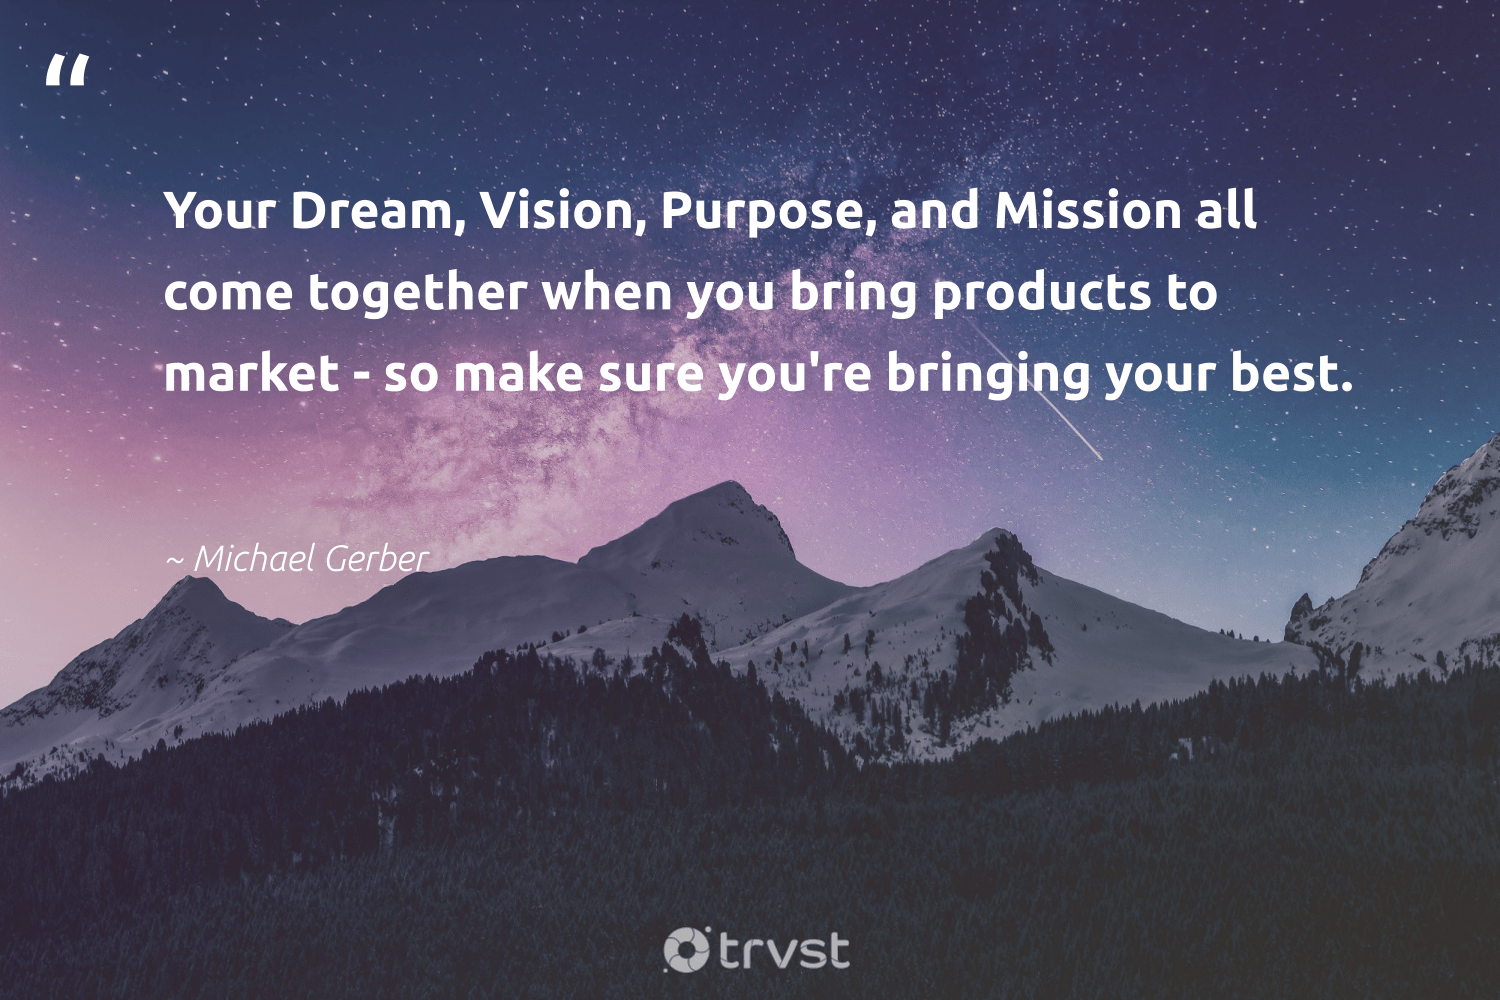 """Your Dream, Vision, Purpose, and Mission all come together when you bring products to market - so make sure you're bringing your best.""  - Michael Gerber #trvst #quotes #purpose #findingpupose #weareallone #mindset #impact #purposedriven #betterplanet #nevergiveup #dogood #findpurpose"